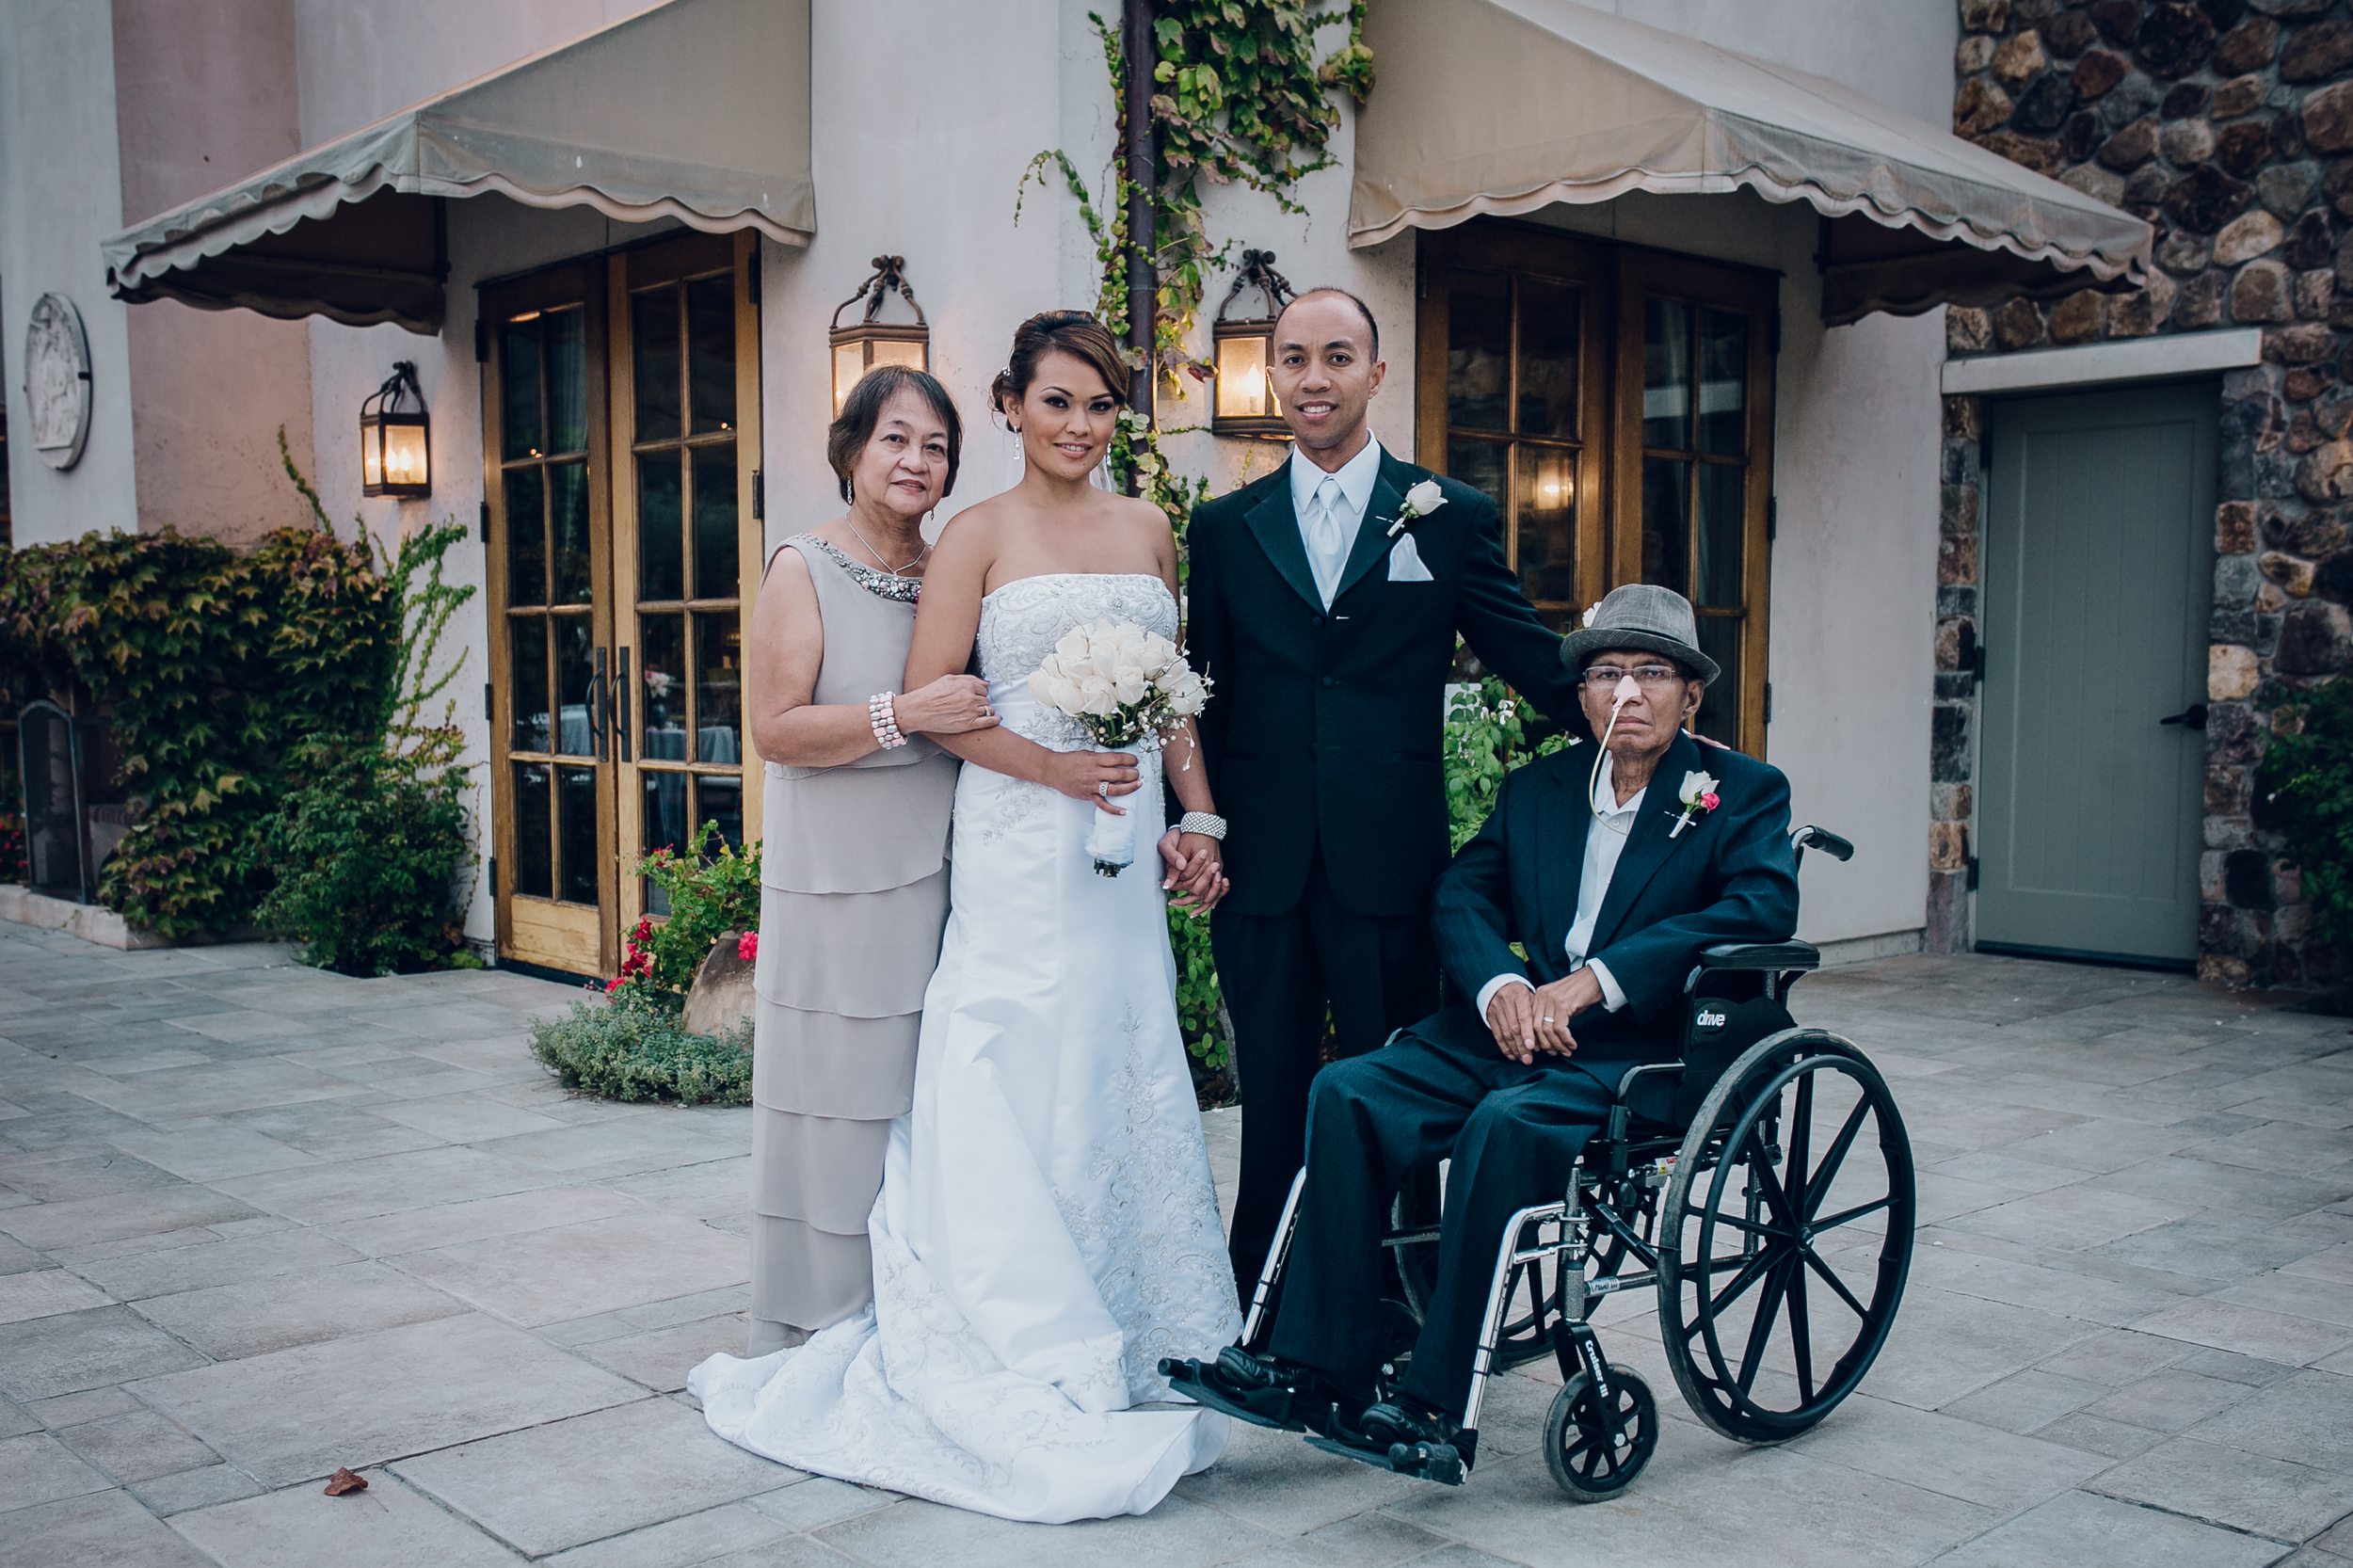 Shiela + Lester's Wedding 9-30-15 956.jpg